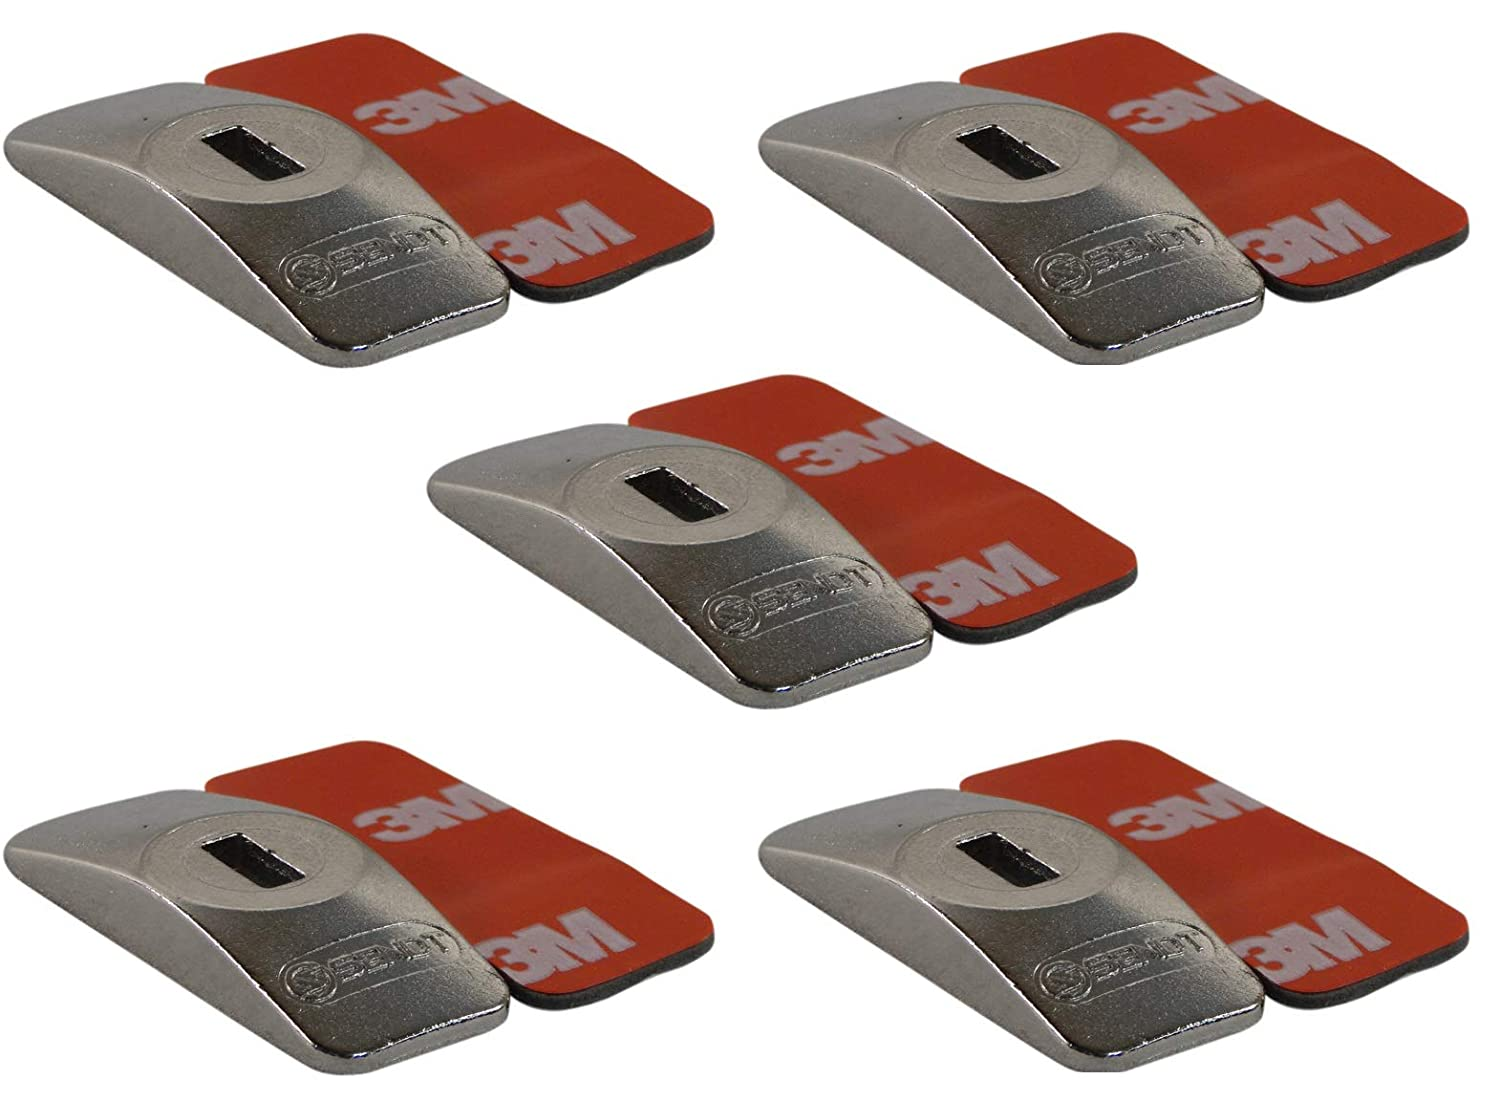 Sendt Adhesive Plates 5 Pack for use with Tablets and Other Devices Without a Kensington Compatible Slot